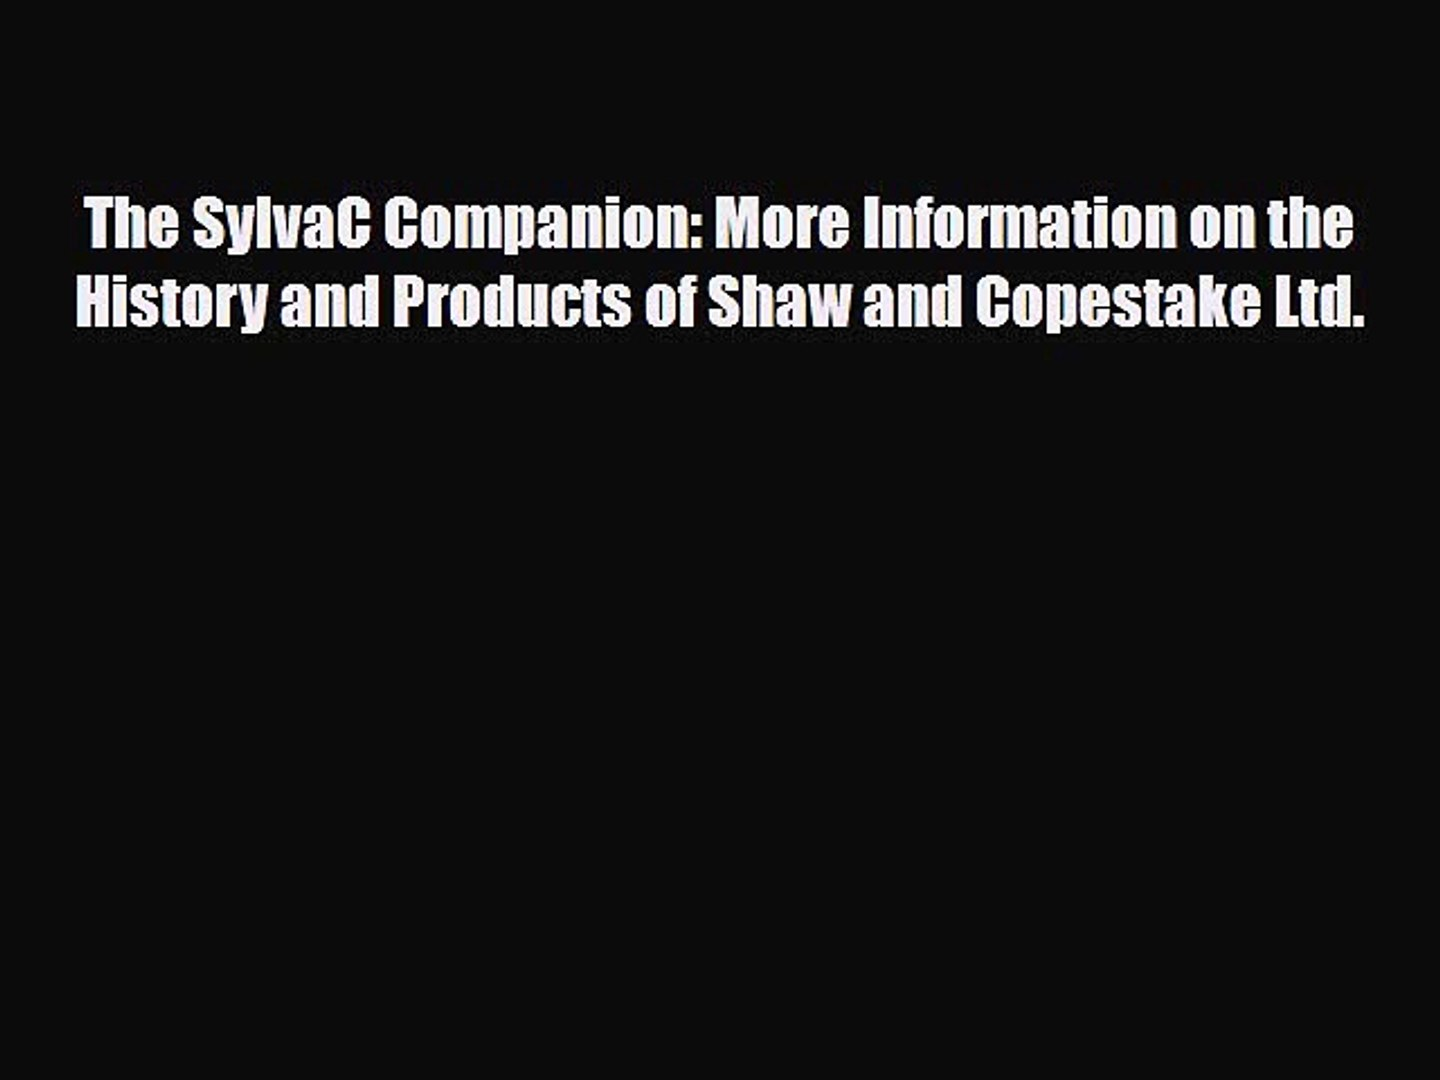 Download The SylvaC Companion: More Information on the History and Products of Shaw and Copestake